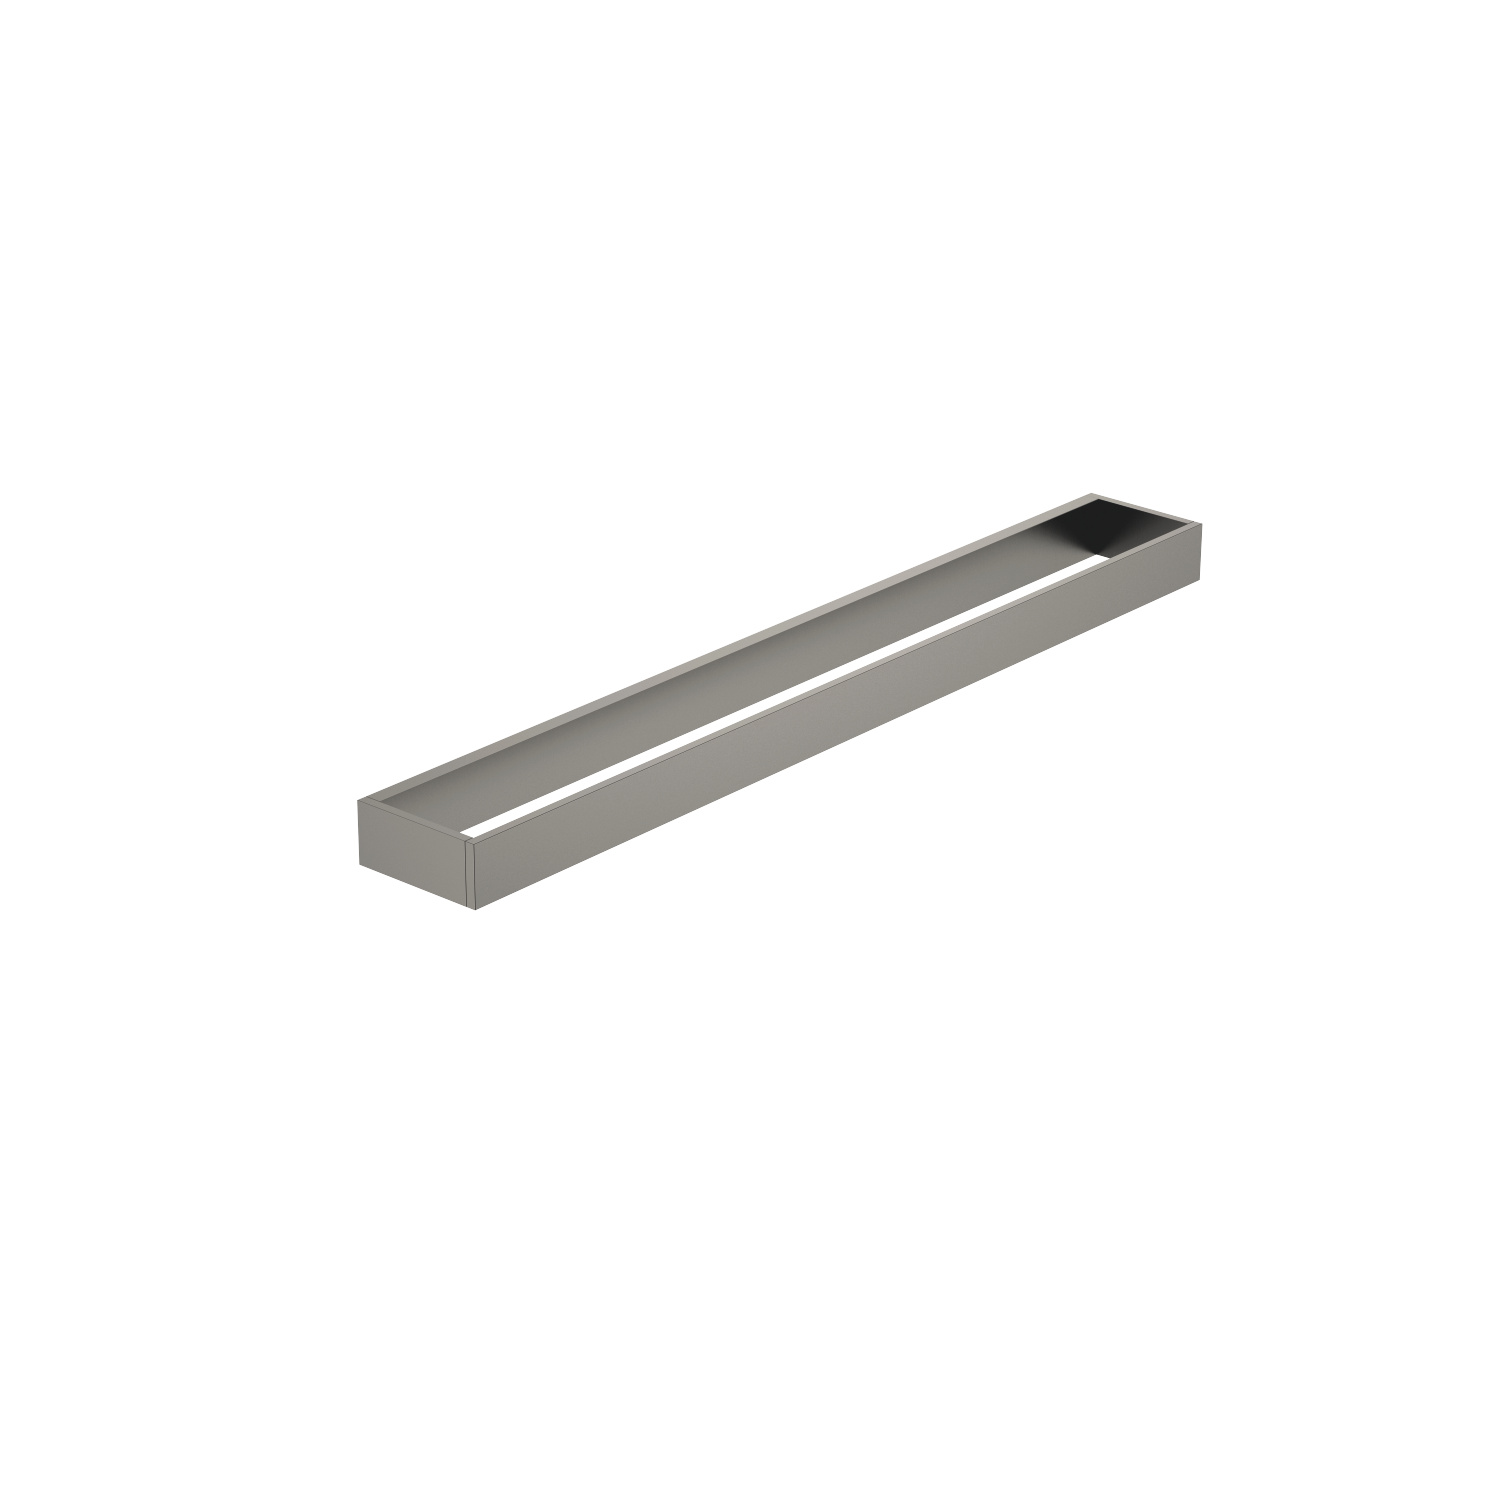 Towel bar - Dark Platinum matte